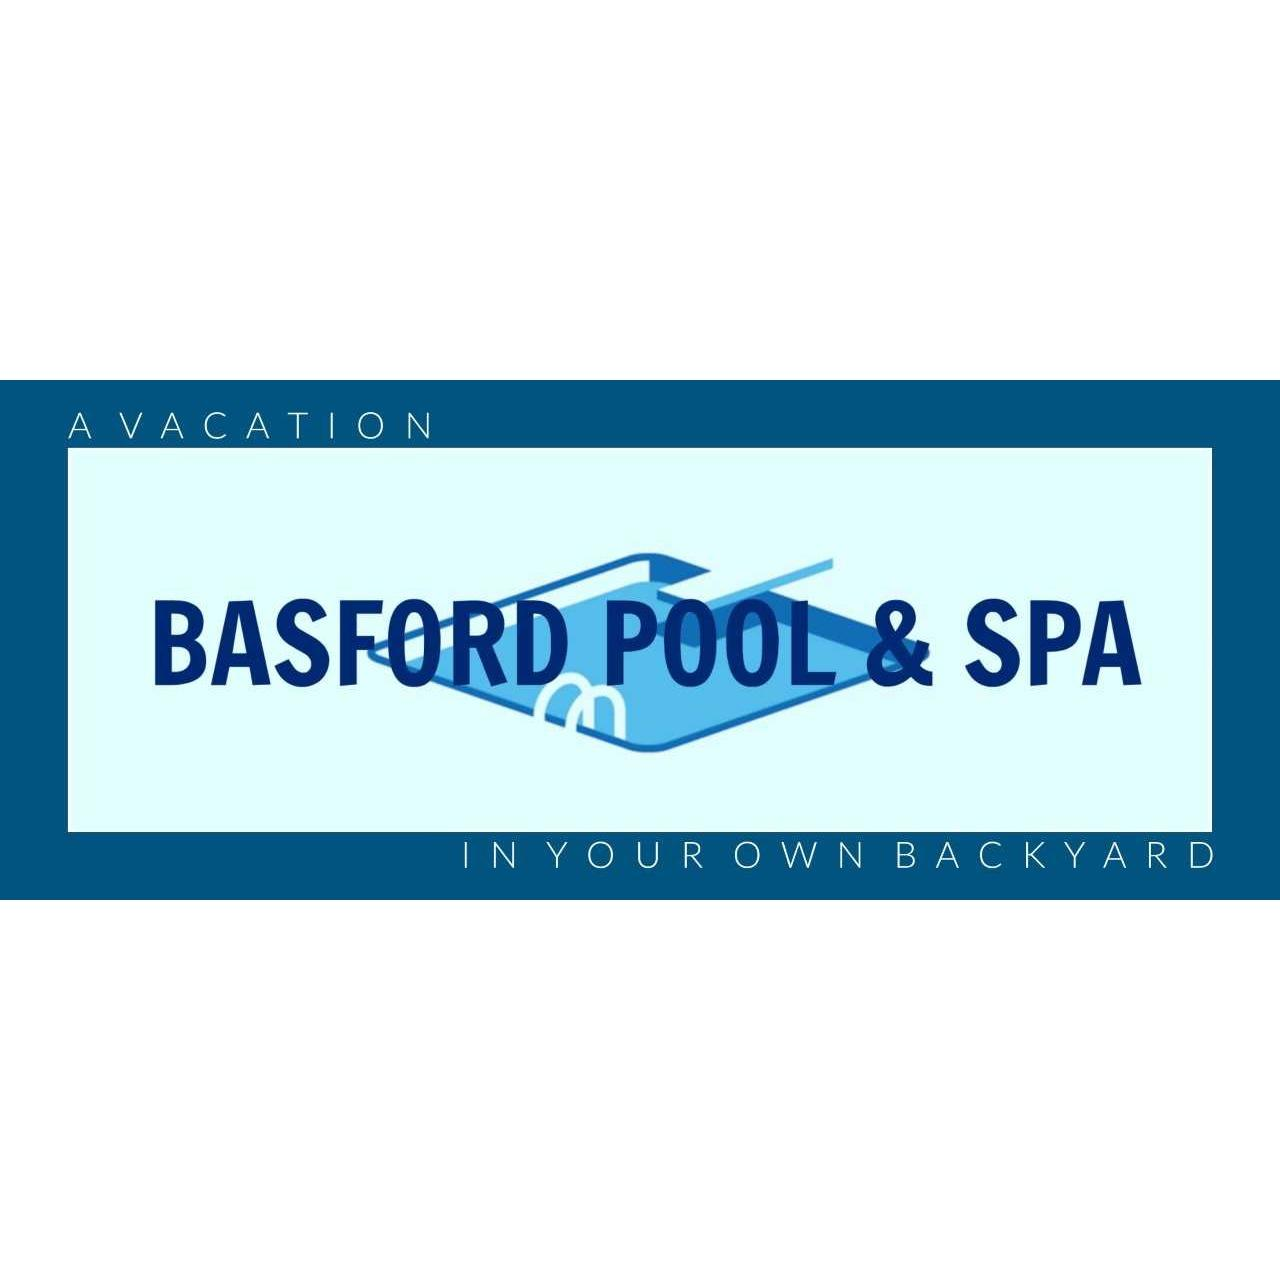 Basford Pool & Spa - Hannibal, MO - Swimming Pools & Spas